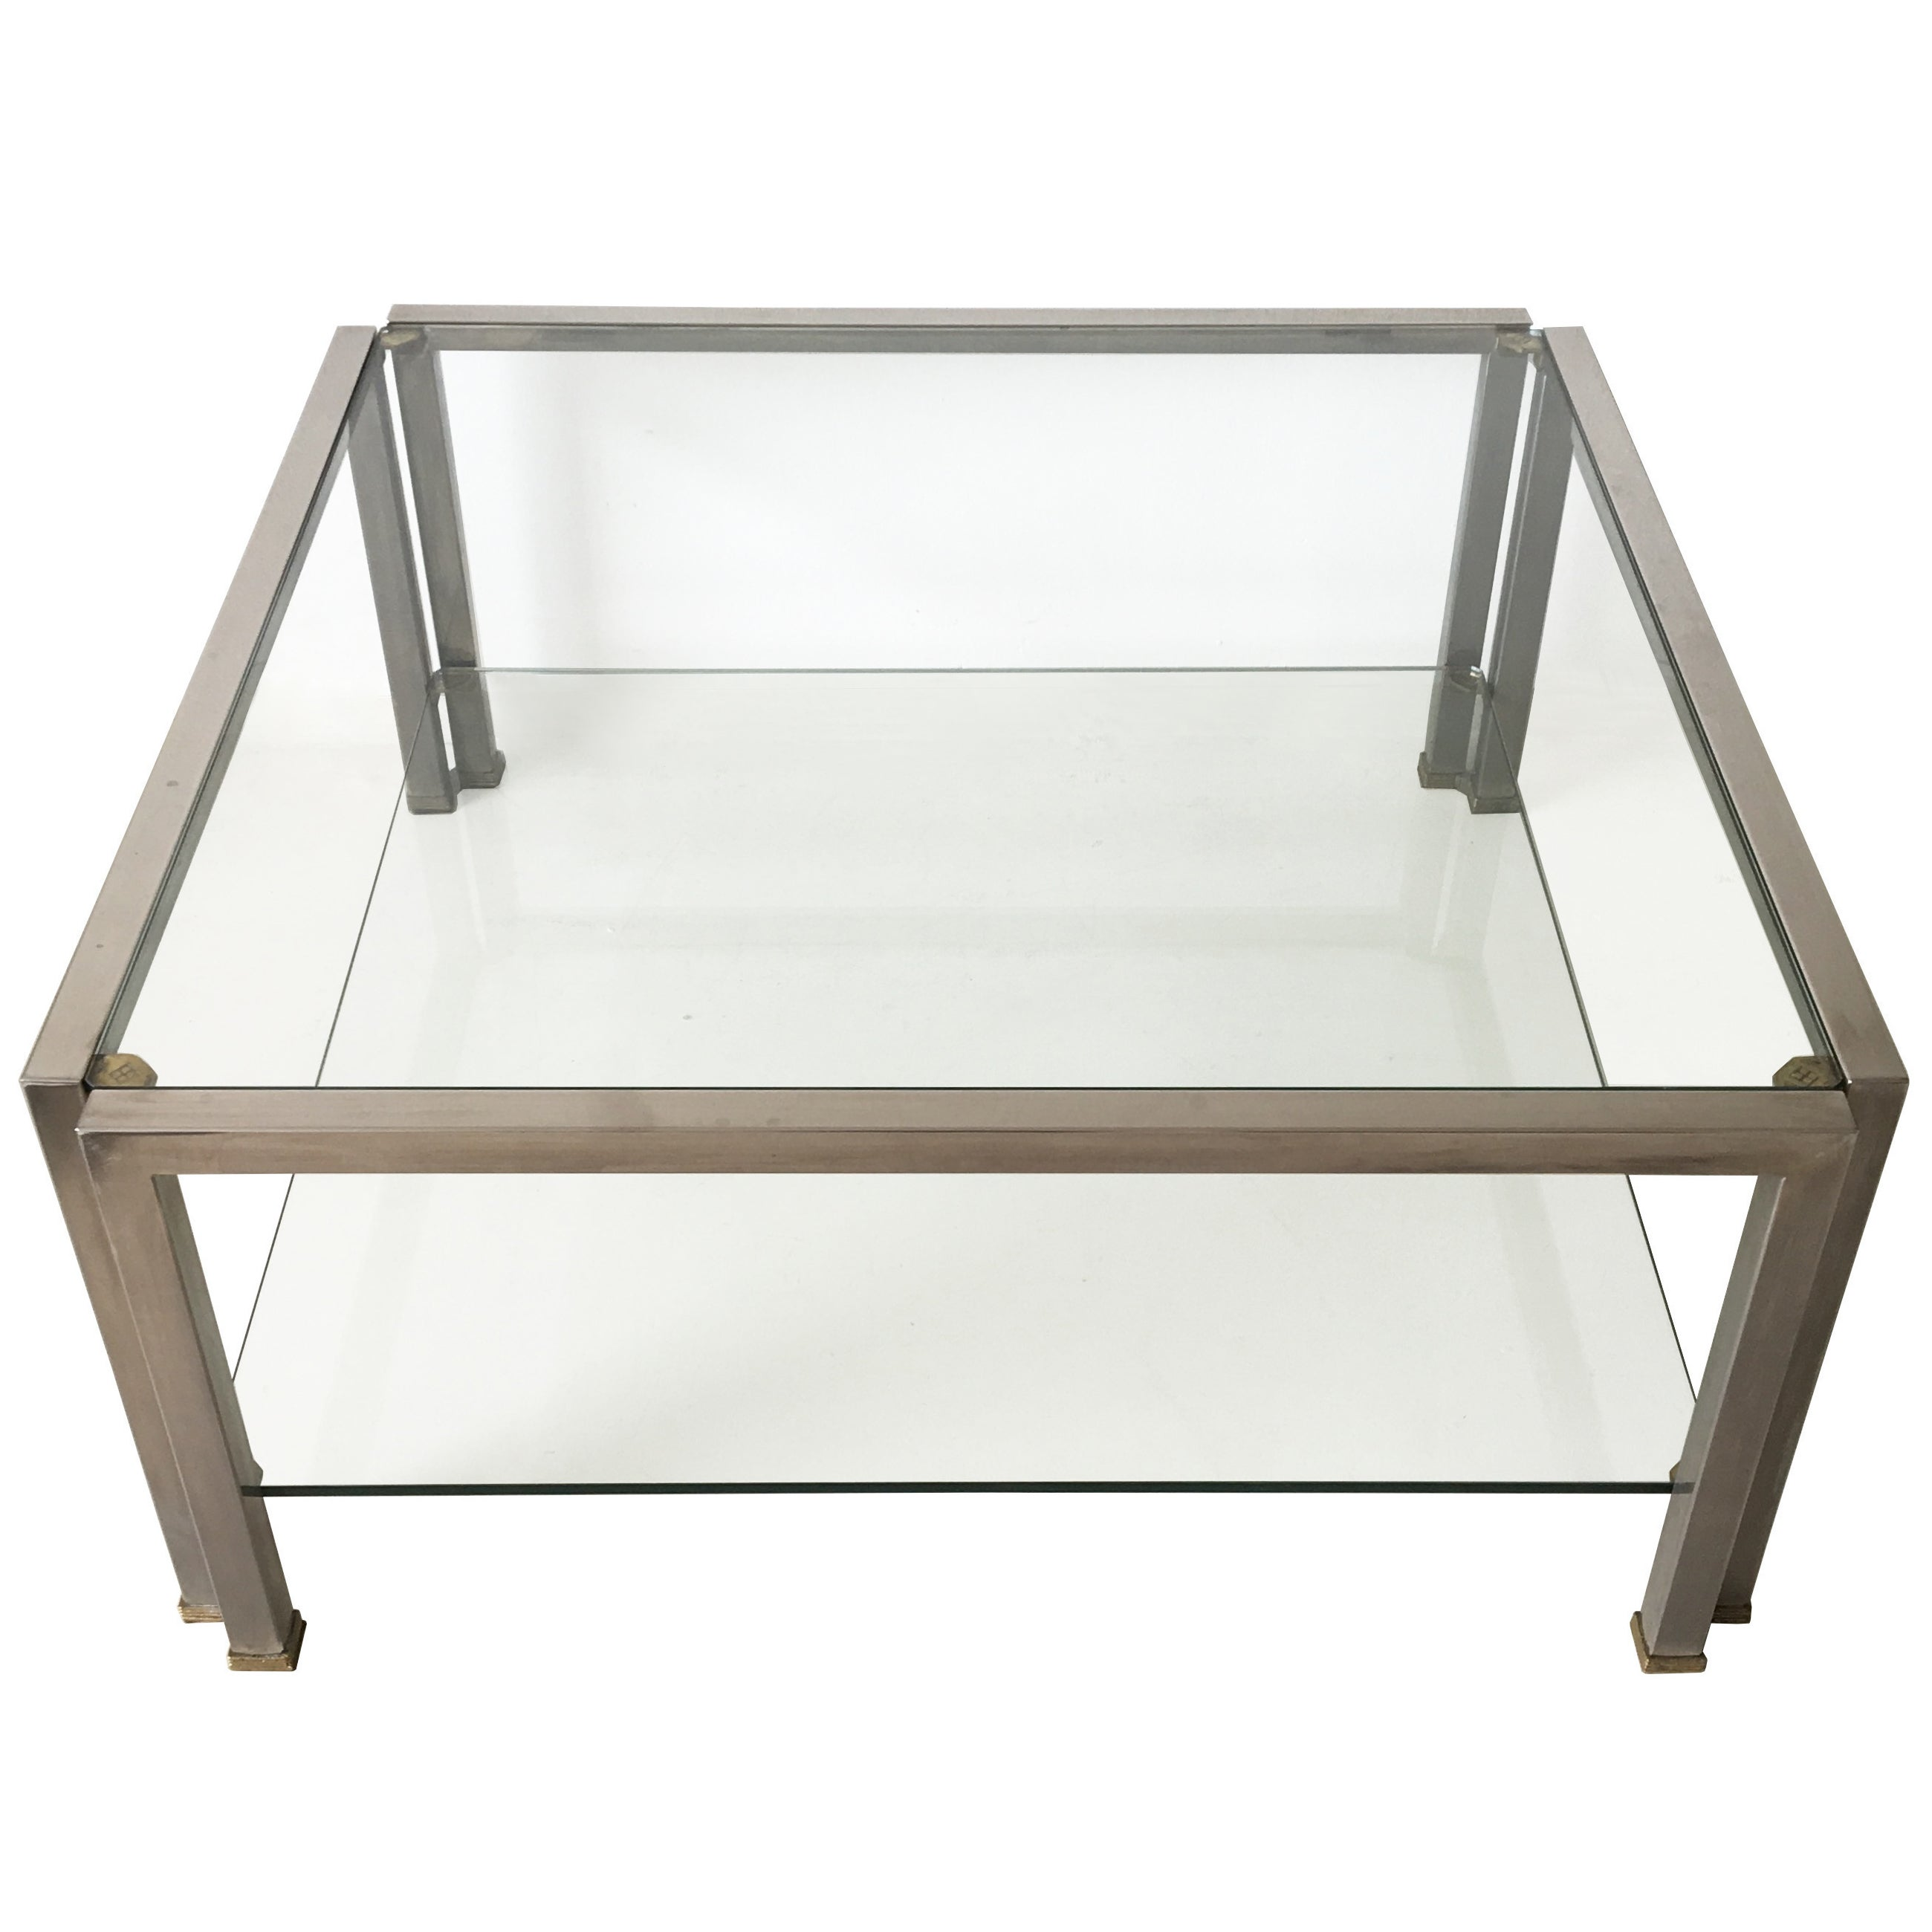 Hollywood Regency Glass Coffee Table T28D by Peter Ghyczy, 1986